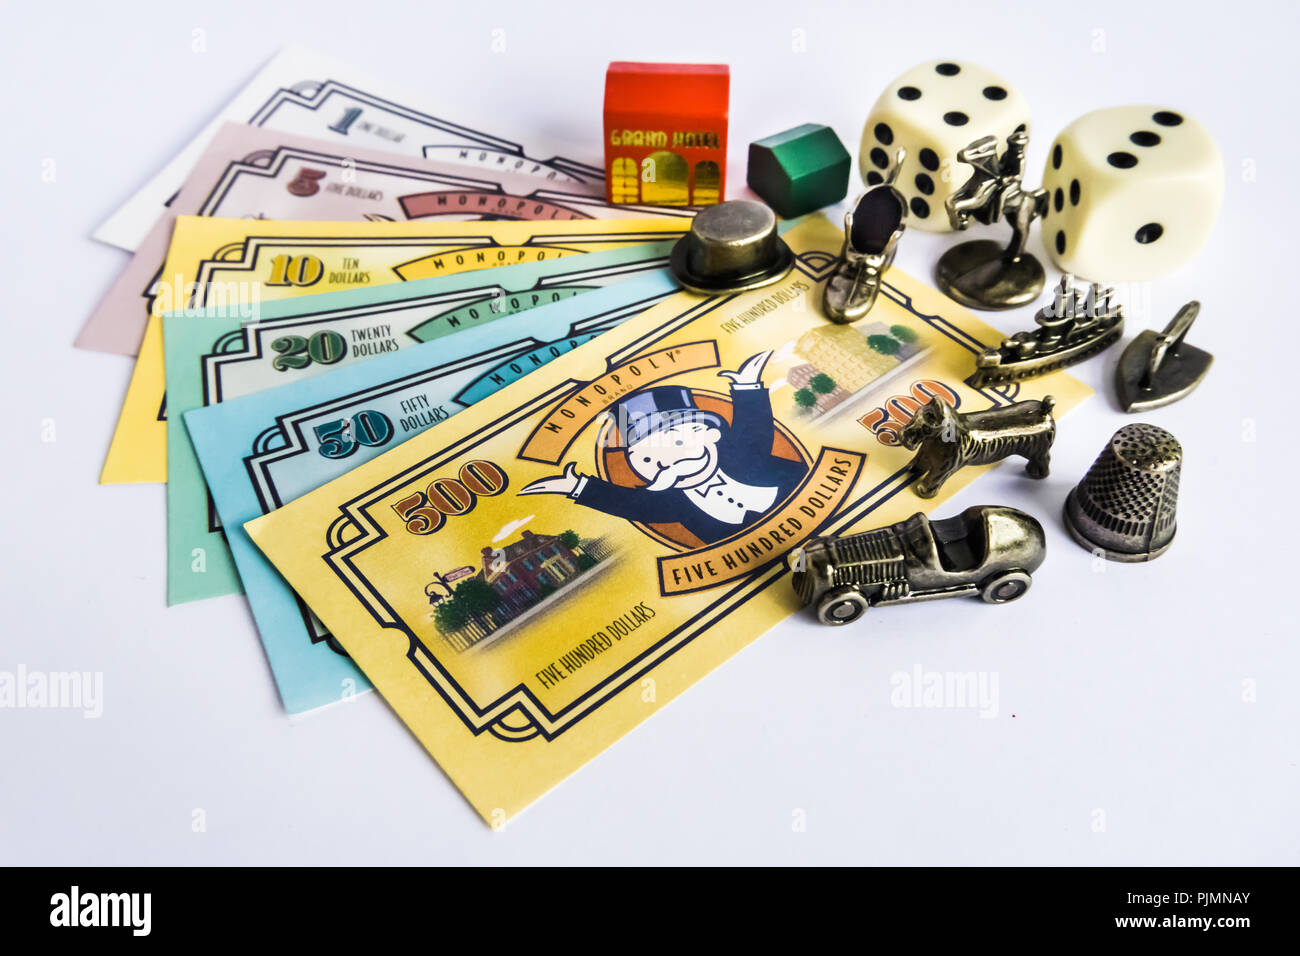 Monopoly Property Trading board game from Parker Brothers. The classic real estate trading game from Parker Brothers. - Stock Image